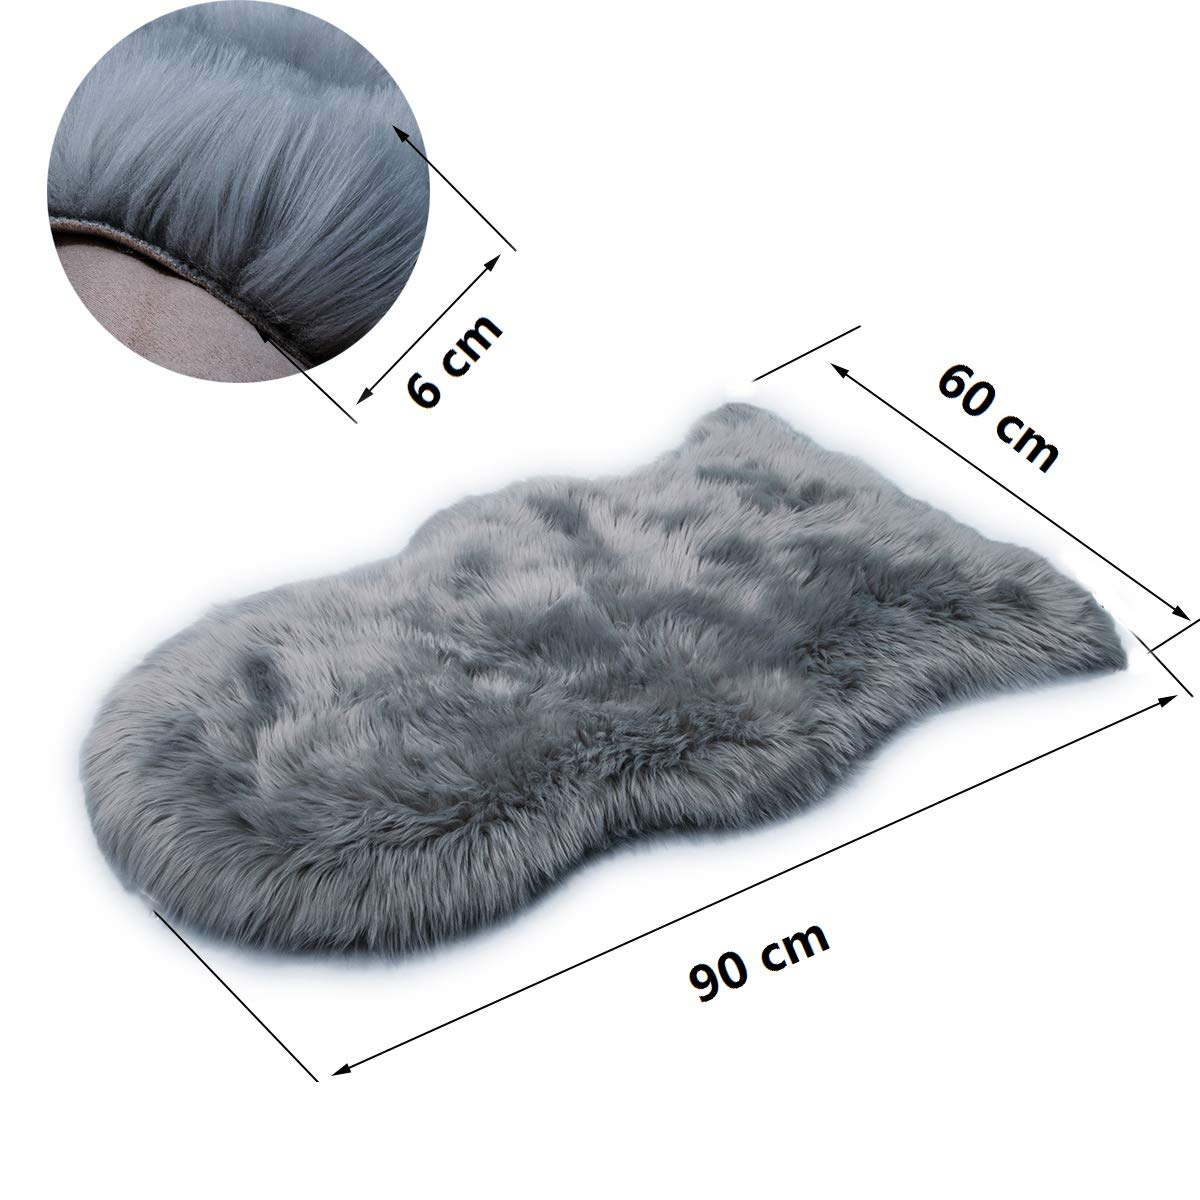 HLZDH faux fur soft fluffy single sheepskin stule Style Rug, Faux Fleece Chair Cover Seat Pad Soft Fluffy Shaggy Area Rugs For Bedroom Sofa Floor